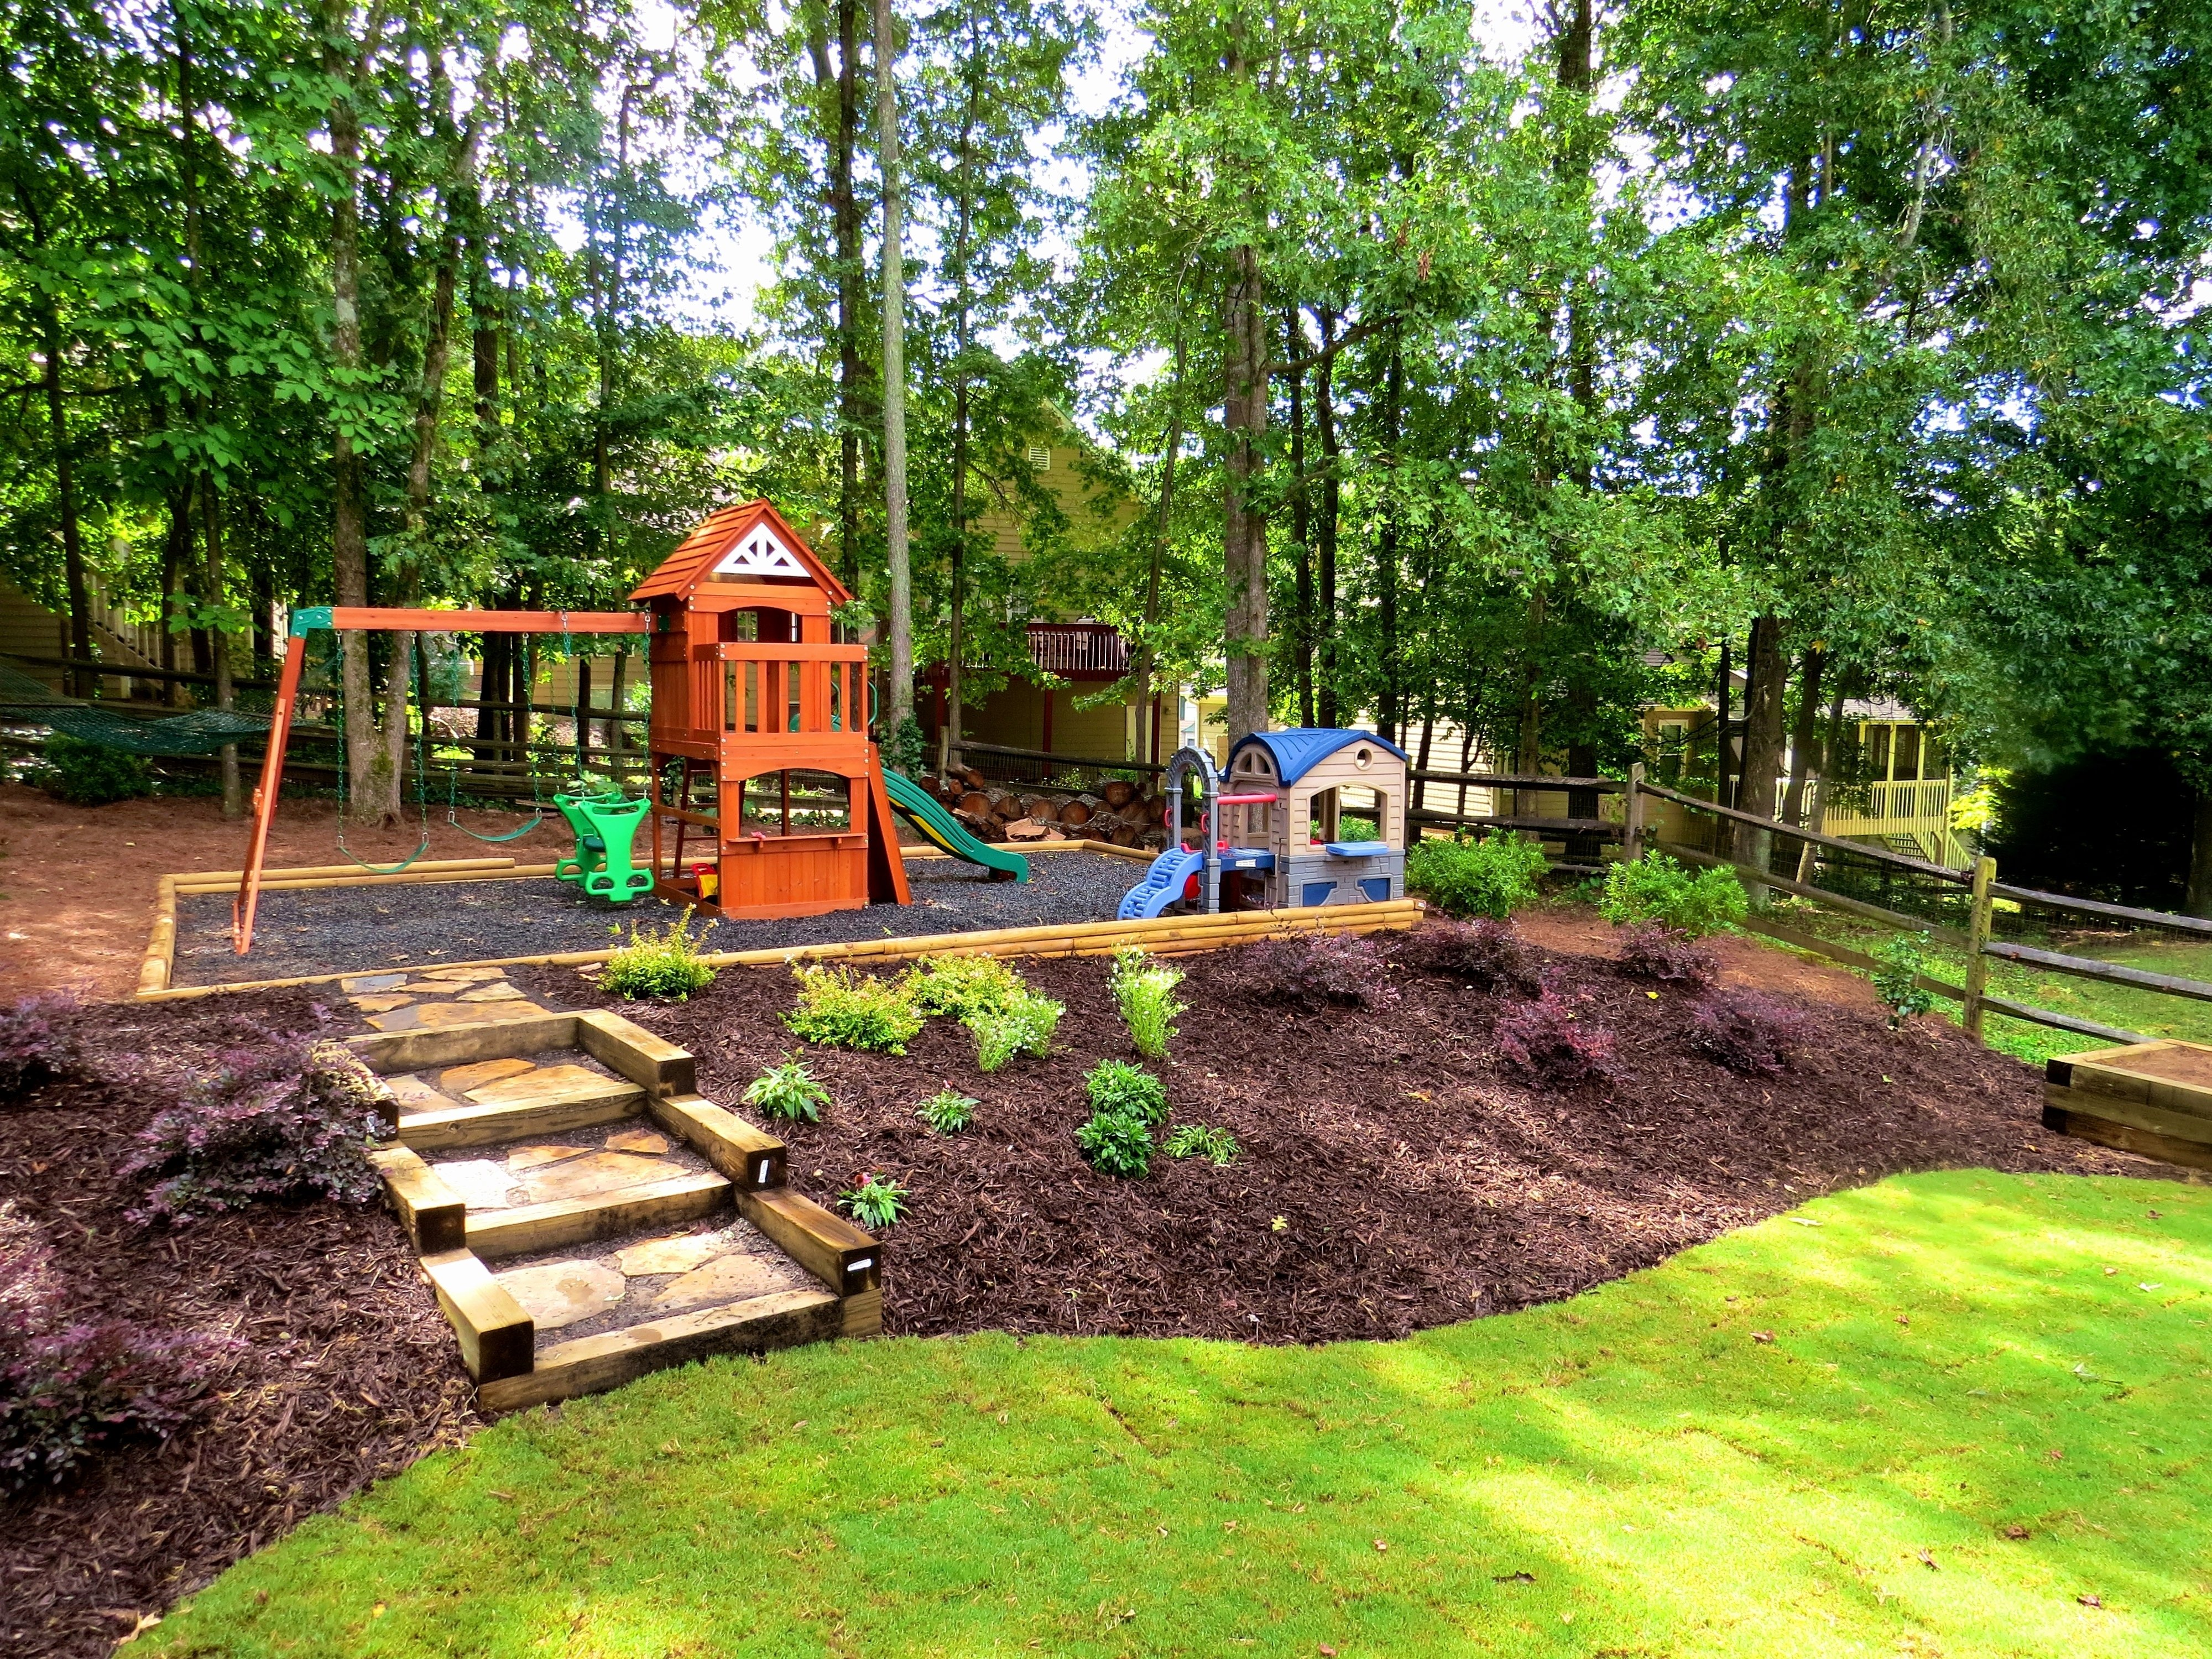 10 Lovable Landscape Ideas For A Slope picture 5 of 47 landscape ideas slope luxury gallery best sloped 1 2021